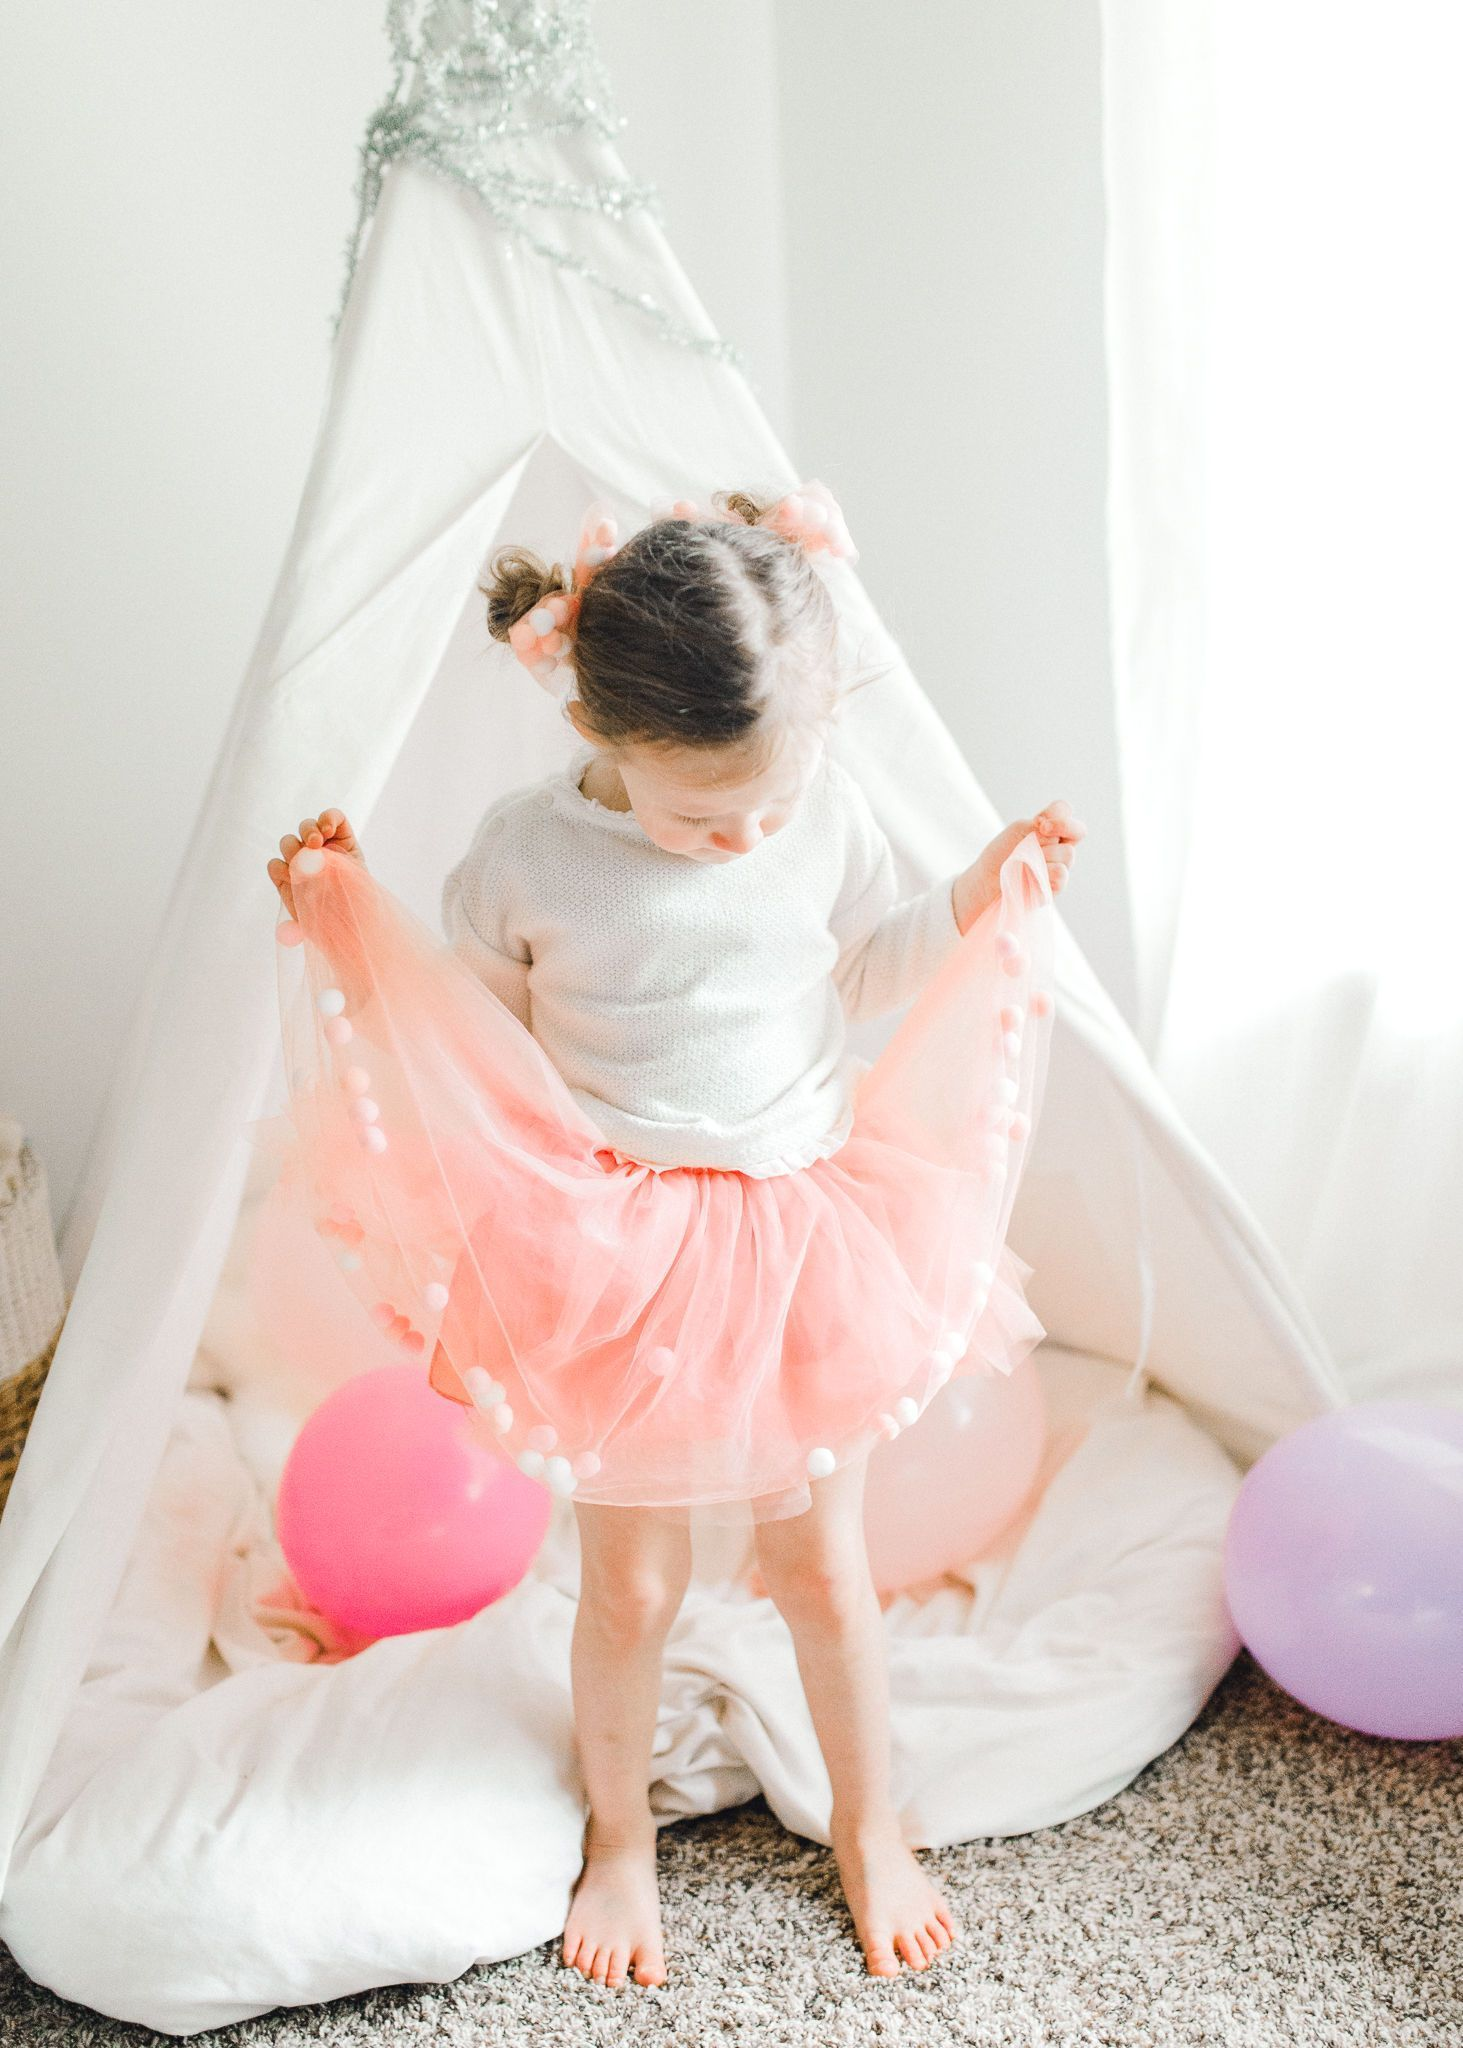 Dusty Rose Pink Tutu Skirt With Pom Pom Balls and Bow Hair Tie-2Pcs Set - JD Ann Bees